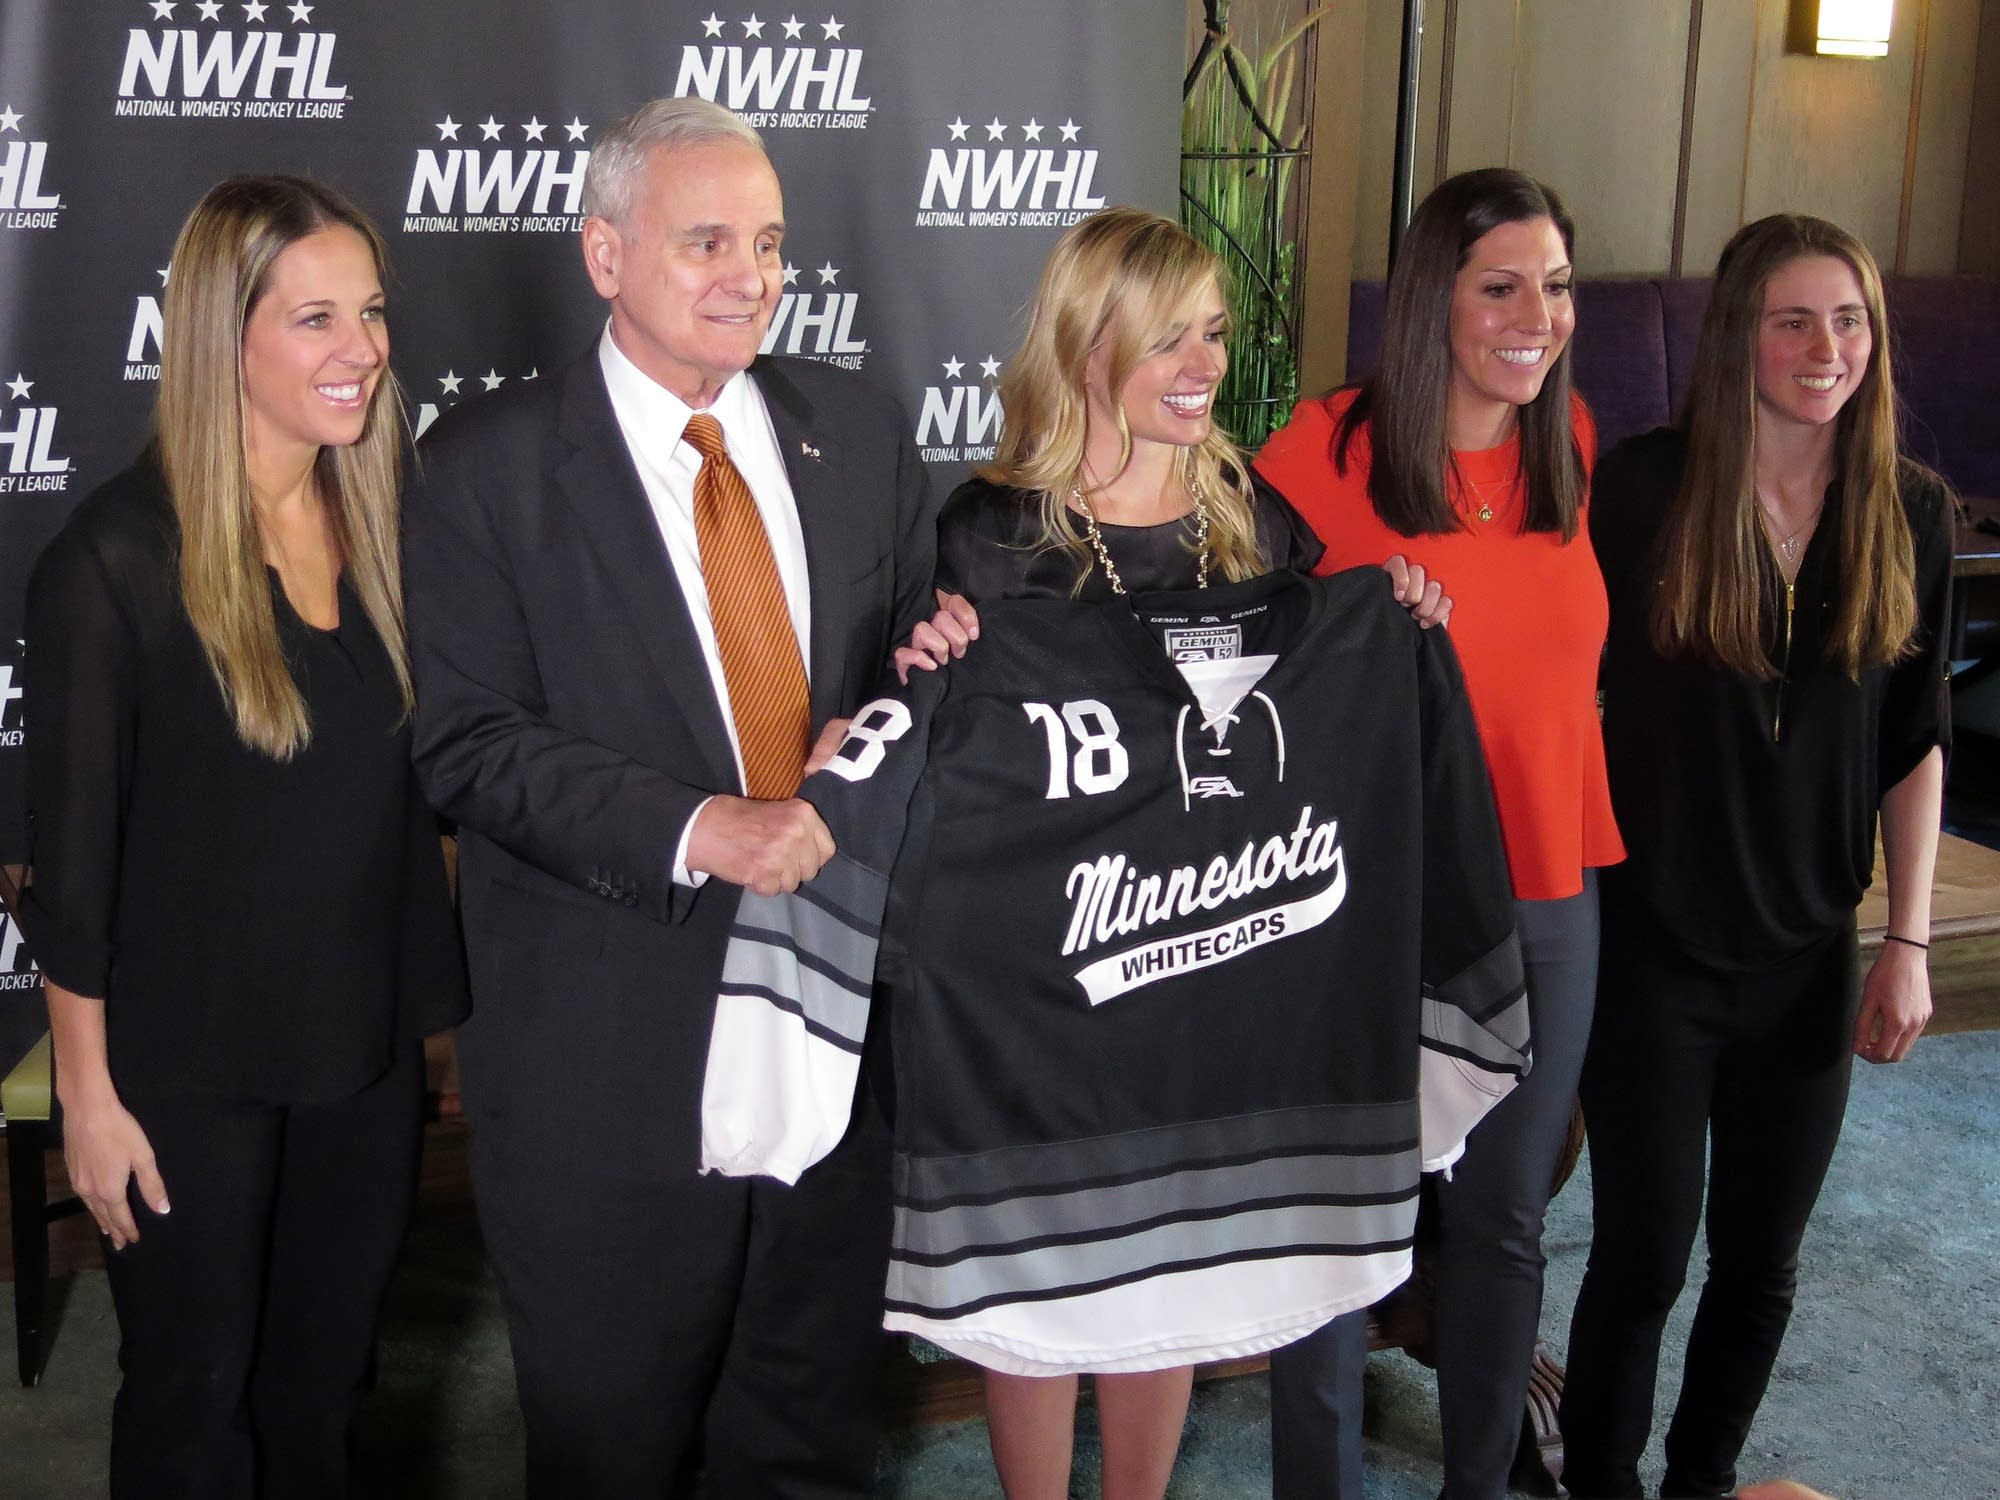 Minnesota Whitecaps announced as new team for NWHL